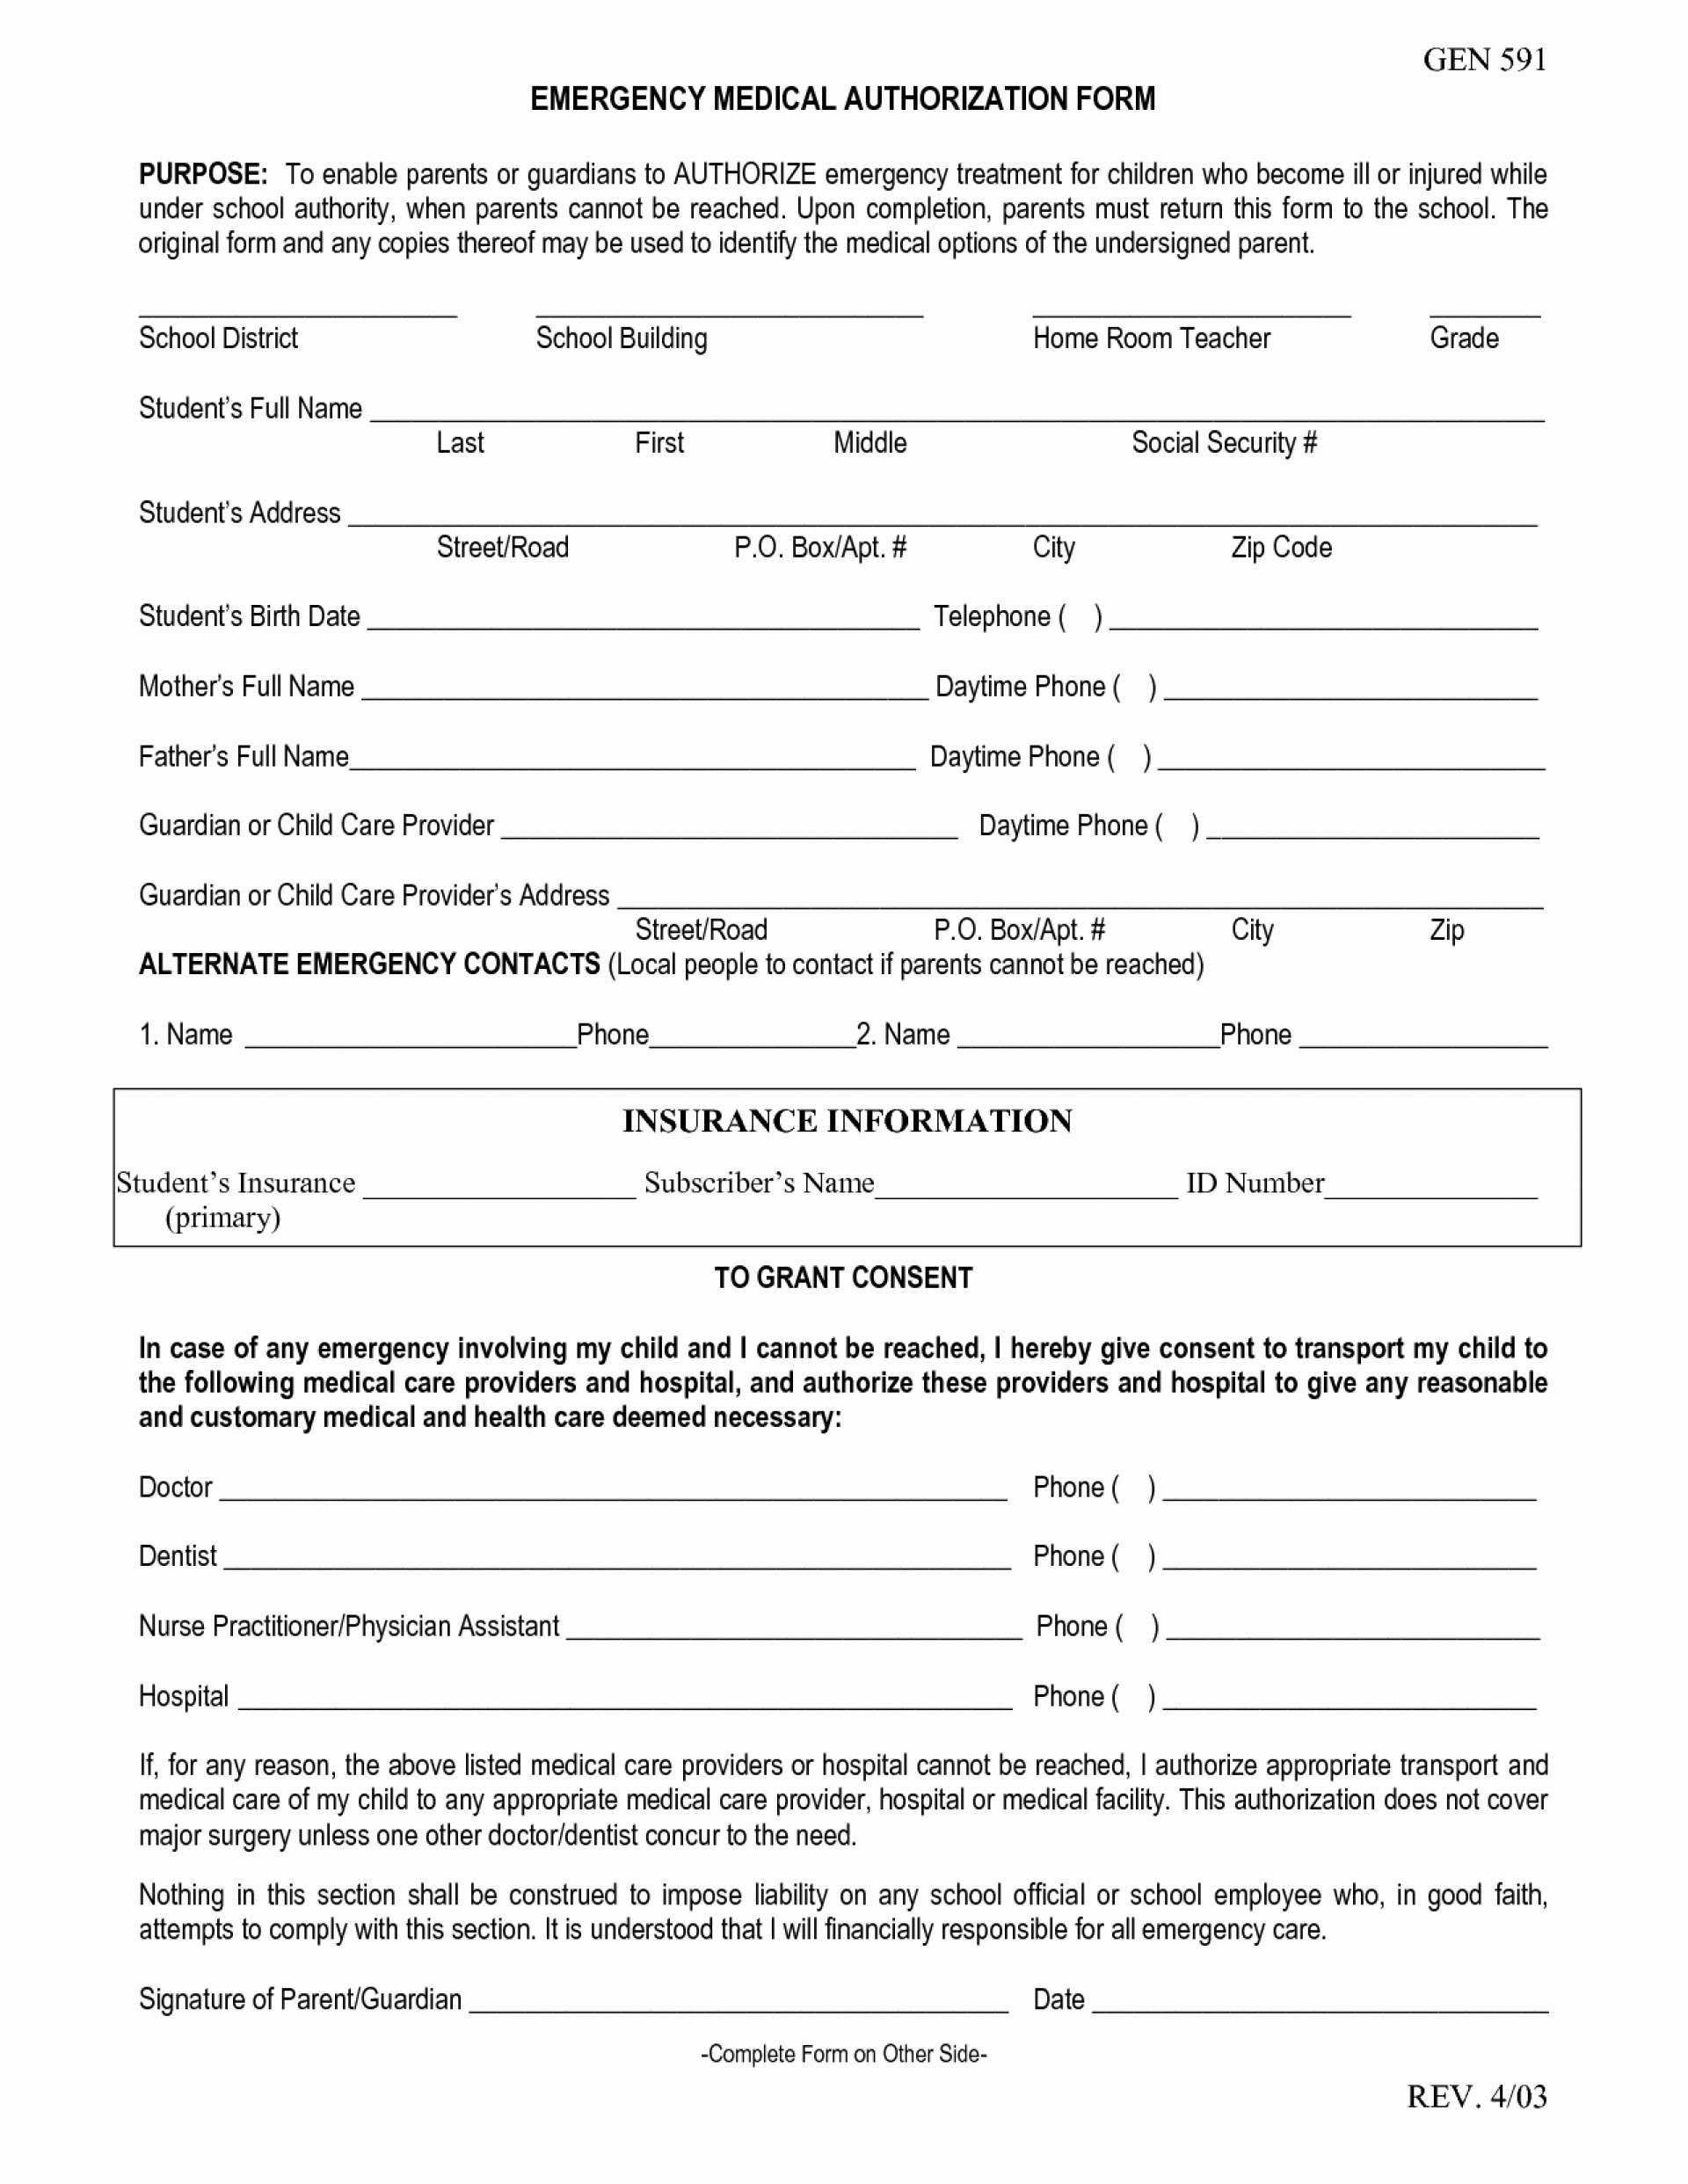 022 Medical Consent Forms Templates And Emergency Form Free - Free Printable Documents